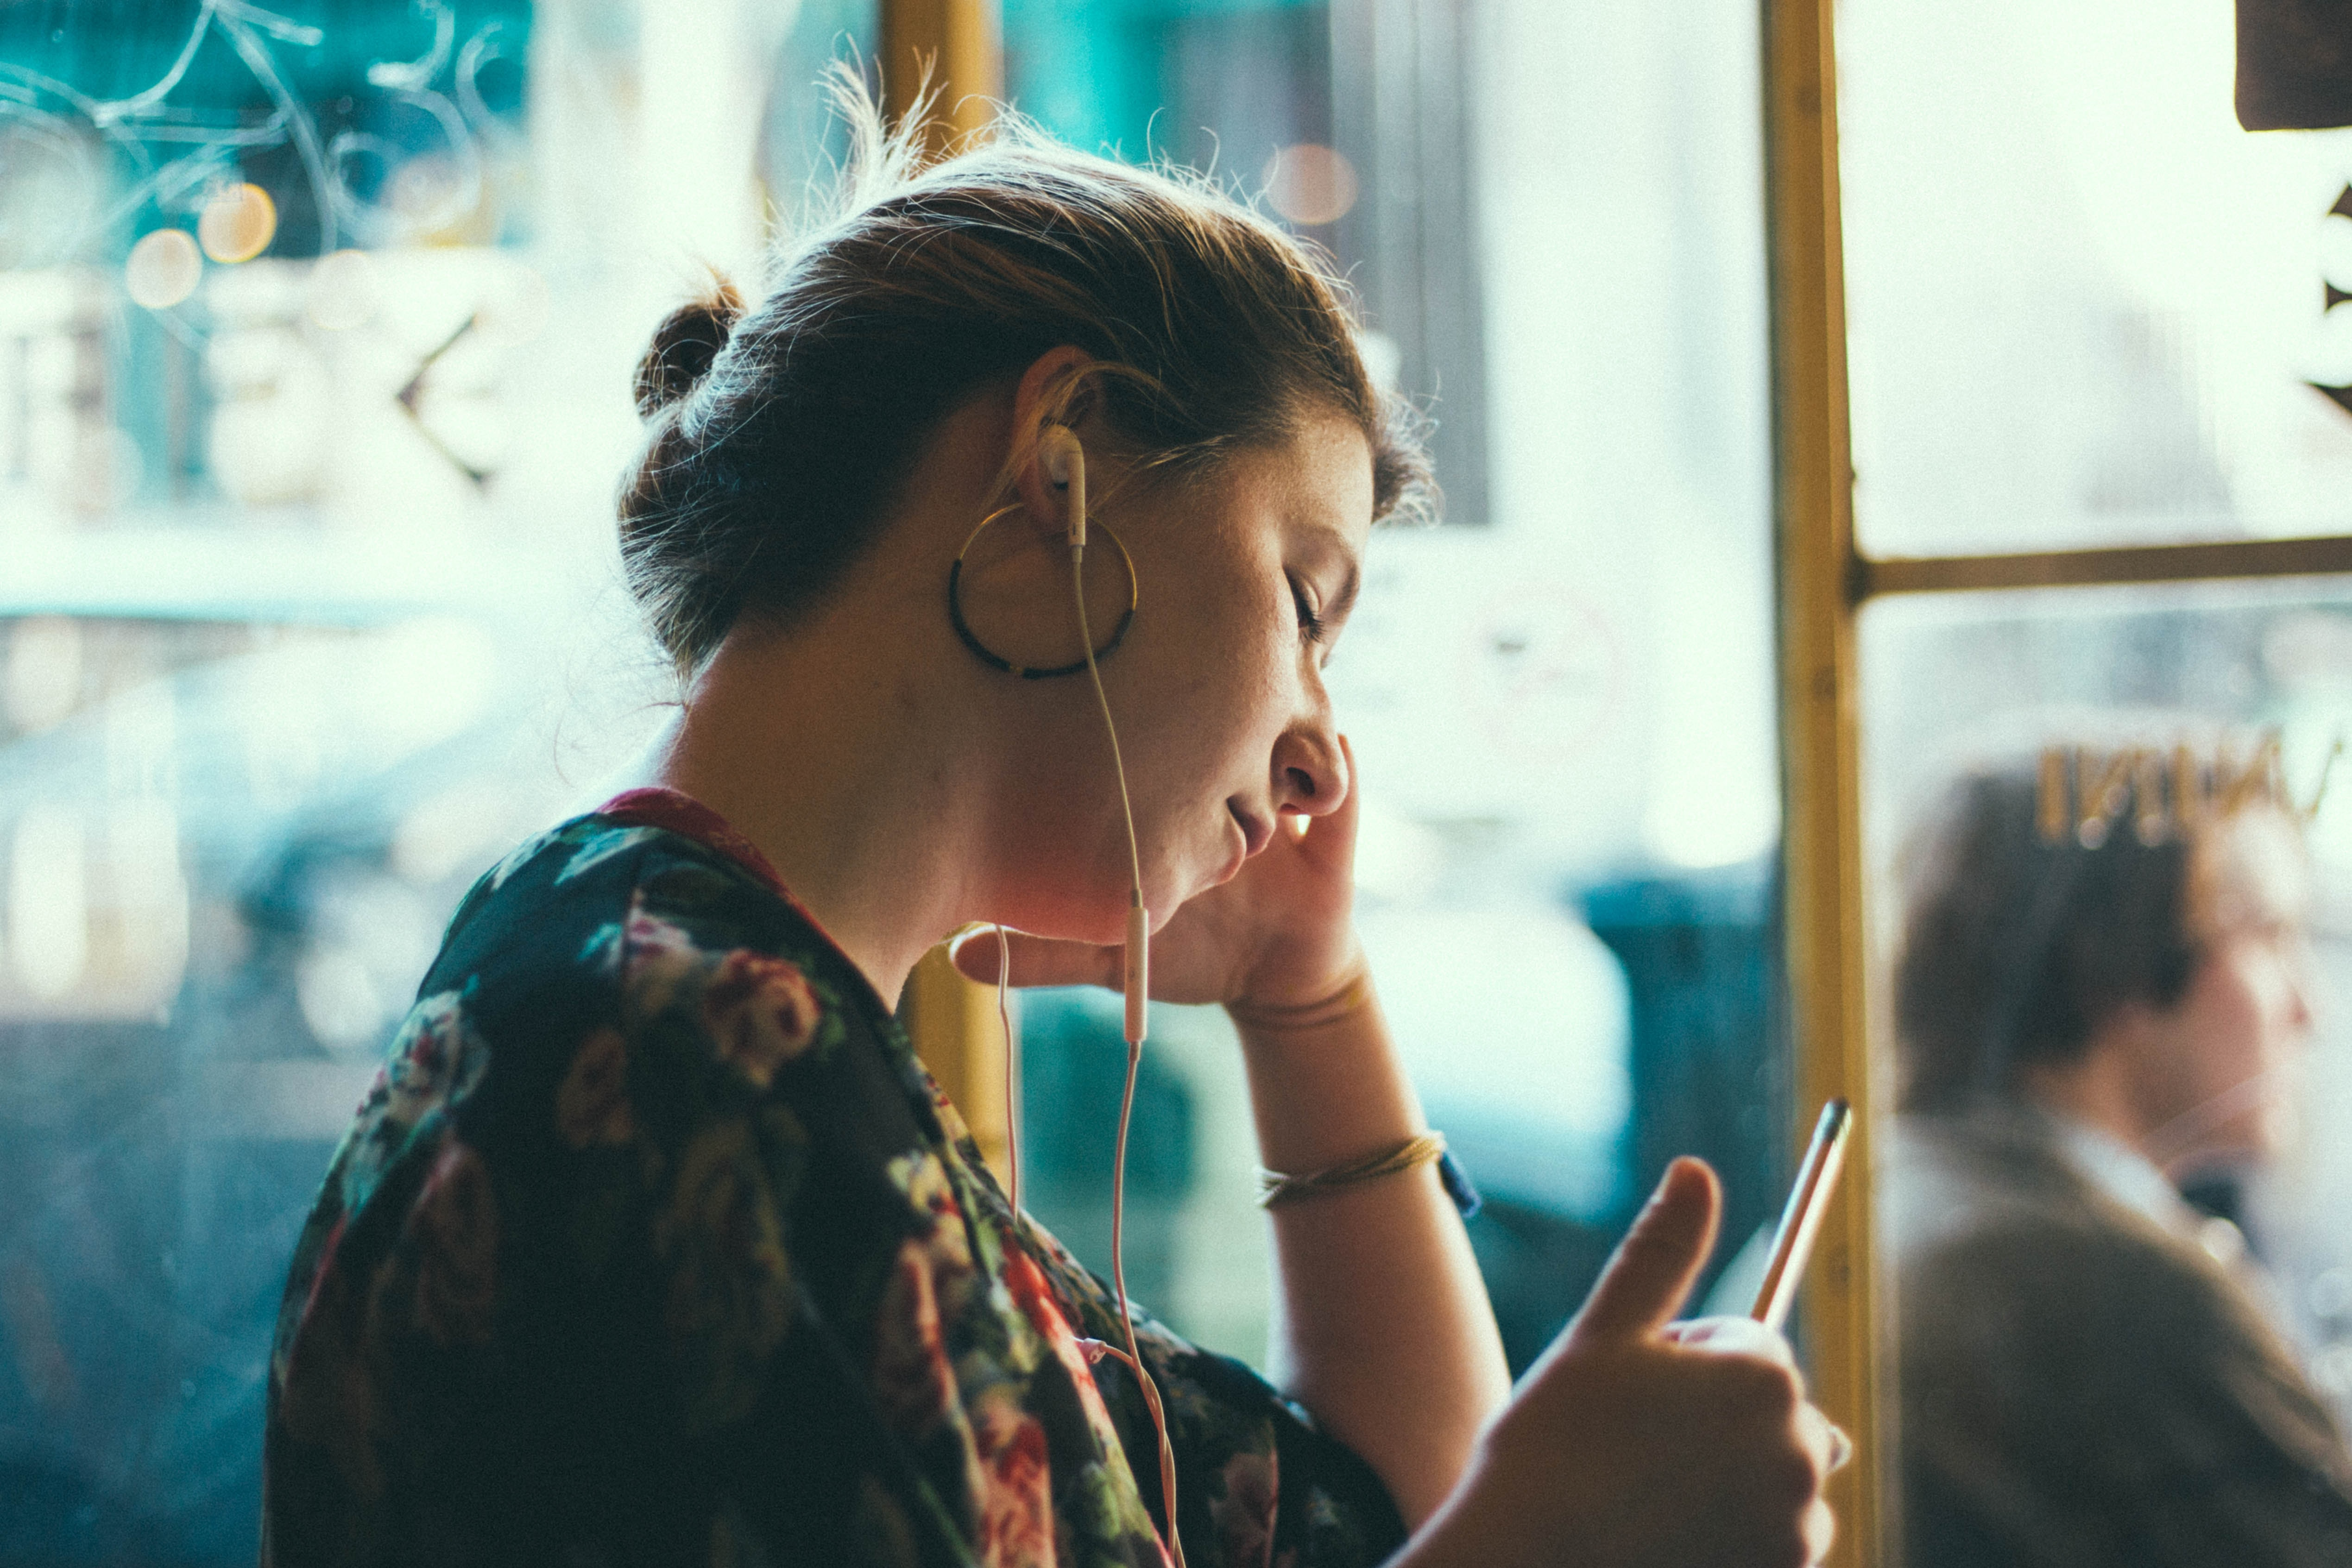 Woman Earbuds - 5 Podcasts All Moms Need to Hear